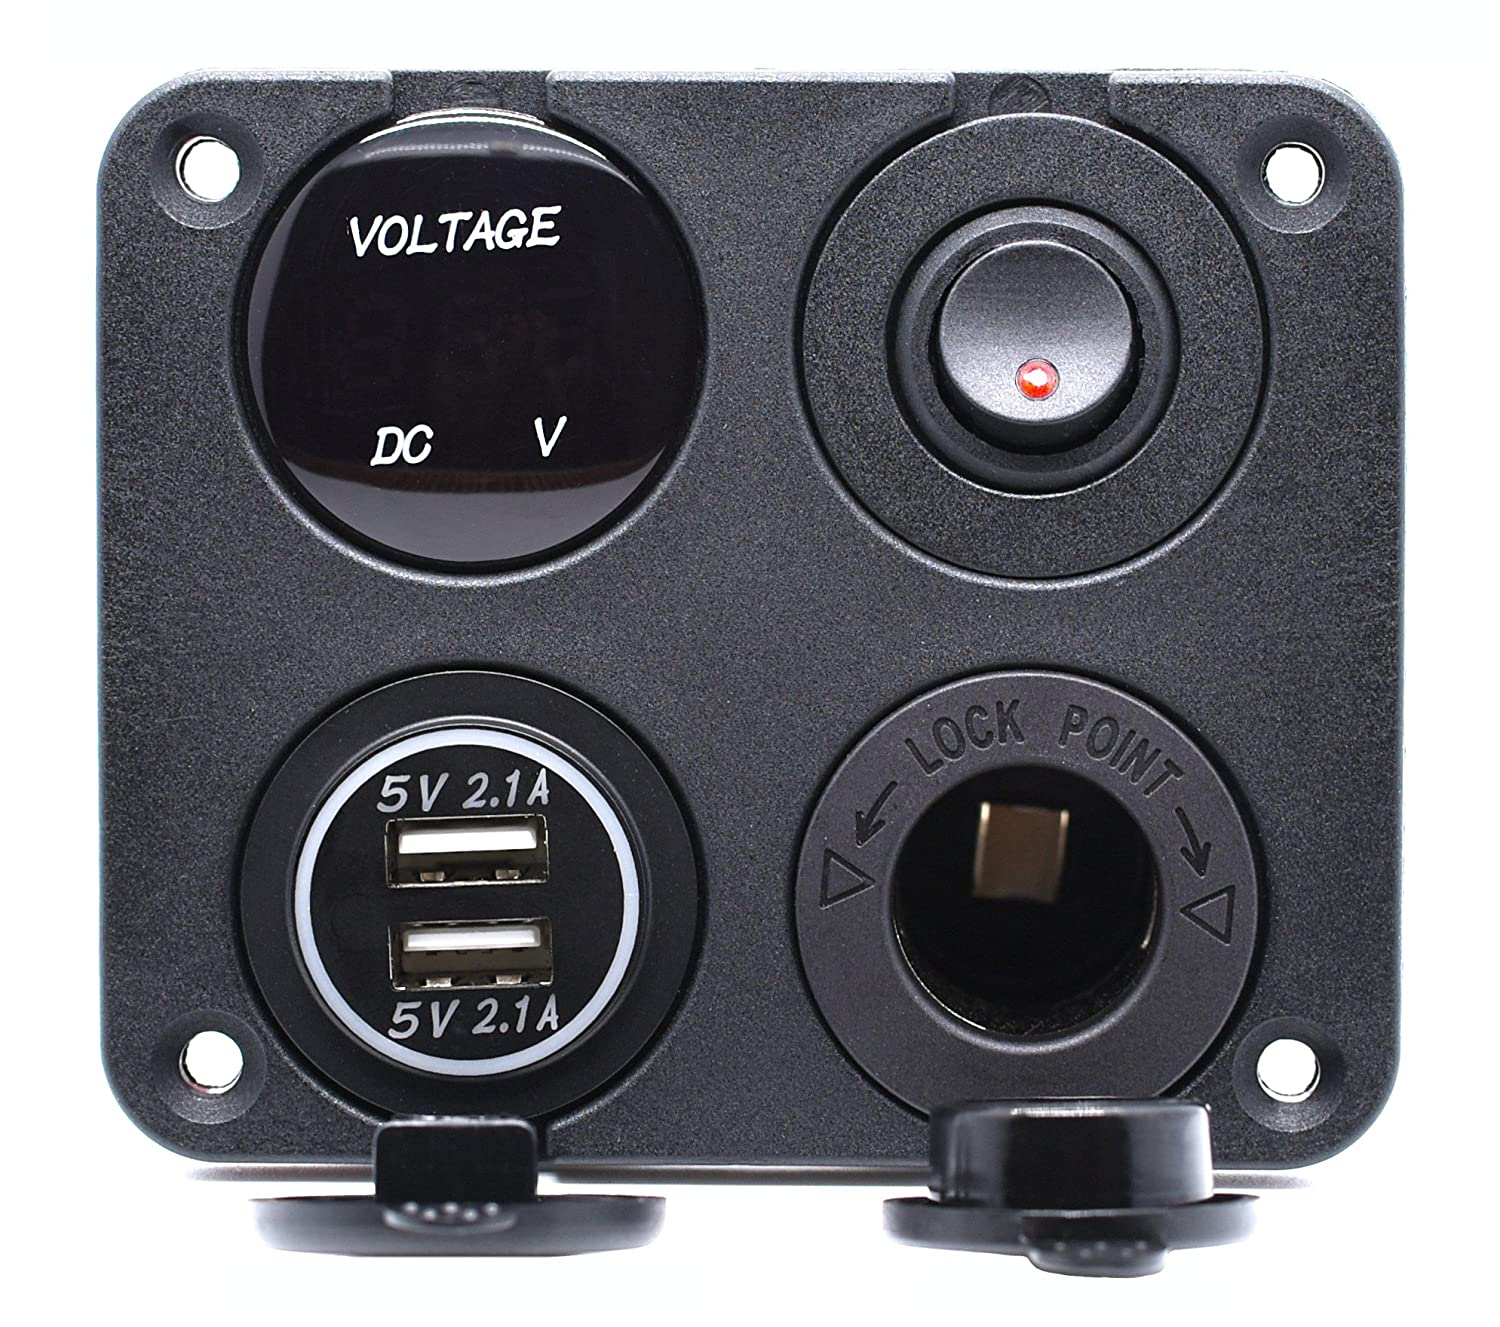 Voltmeter Usb Port Switch Rv Wiring Diagram 43 Socket Sl1500 Cllena Dual Charger 2 1a2 1a Led 12v At Cita